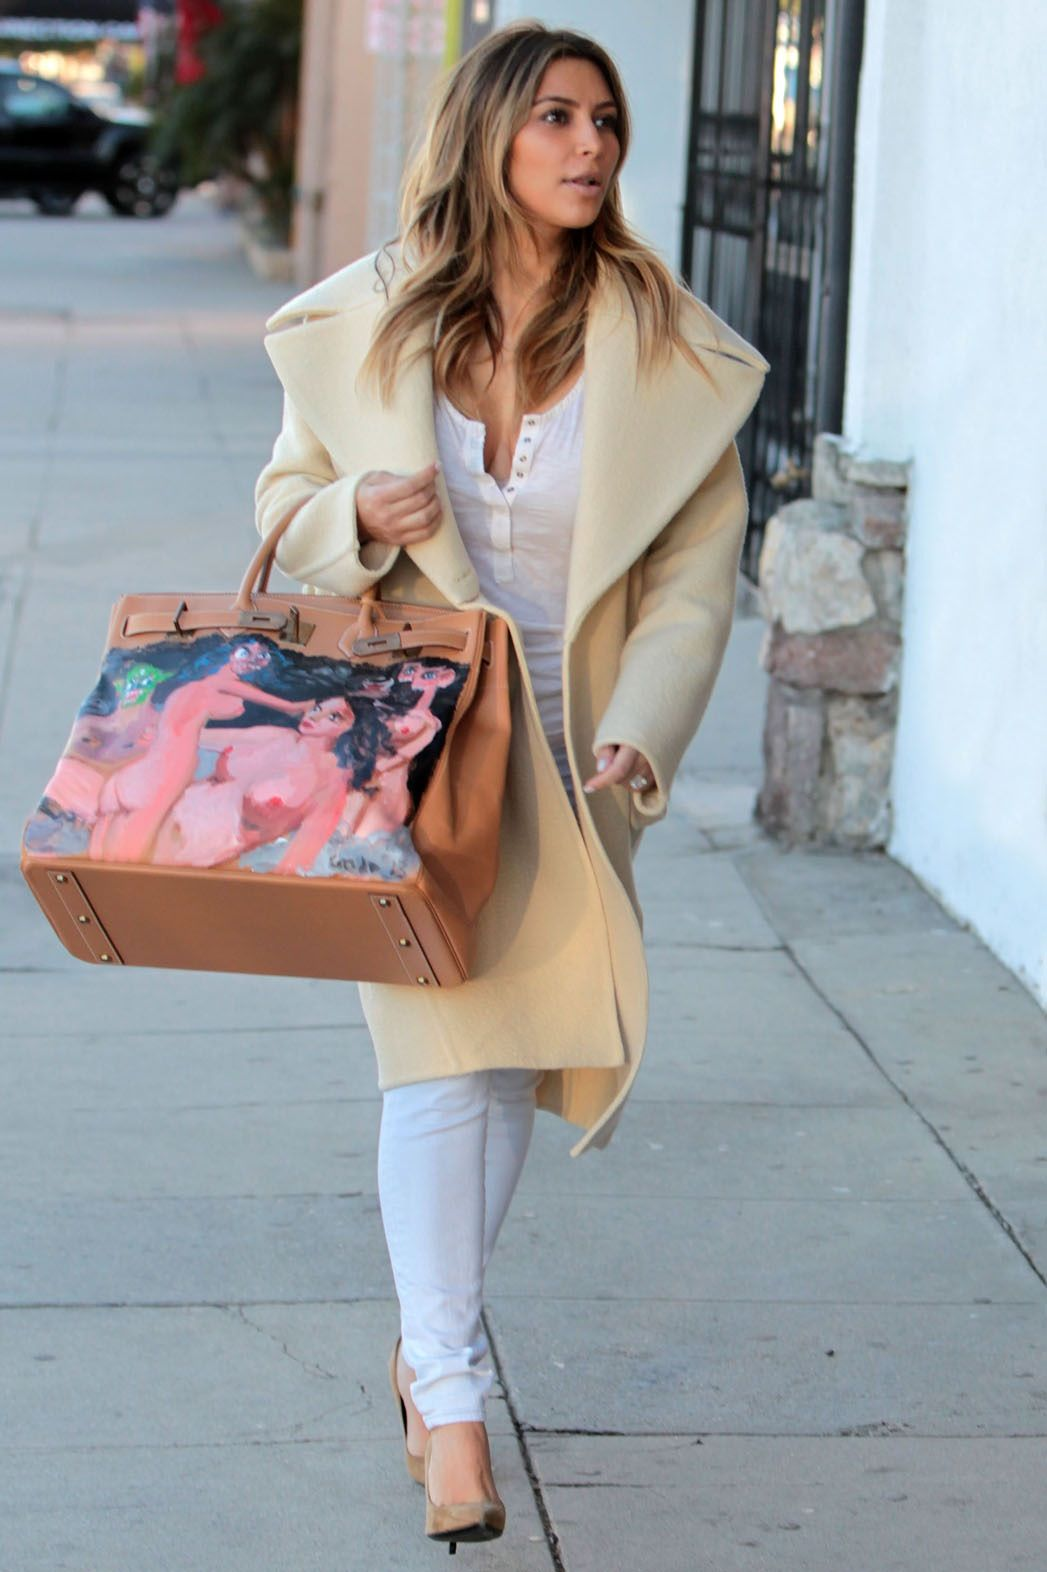 The Birkin of all Birkins.